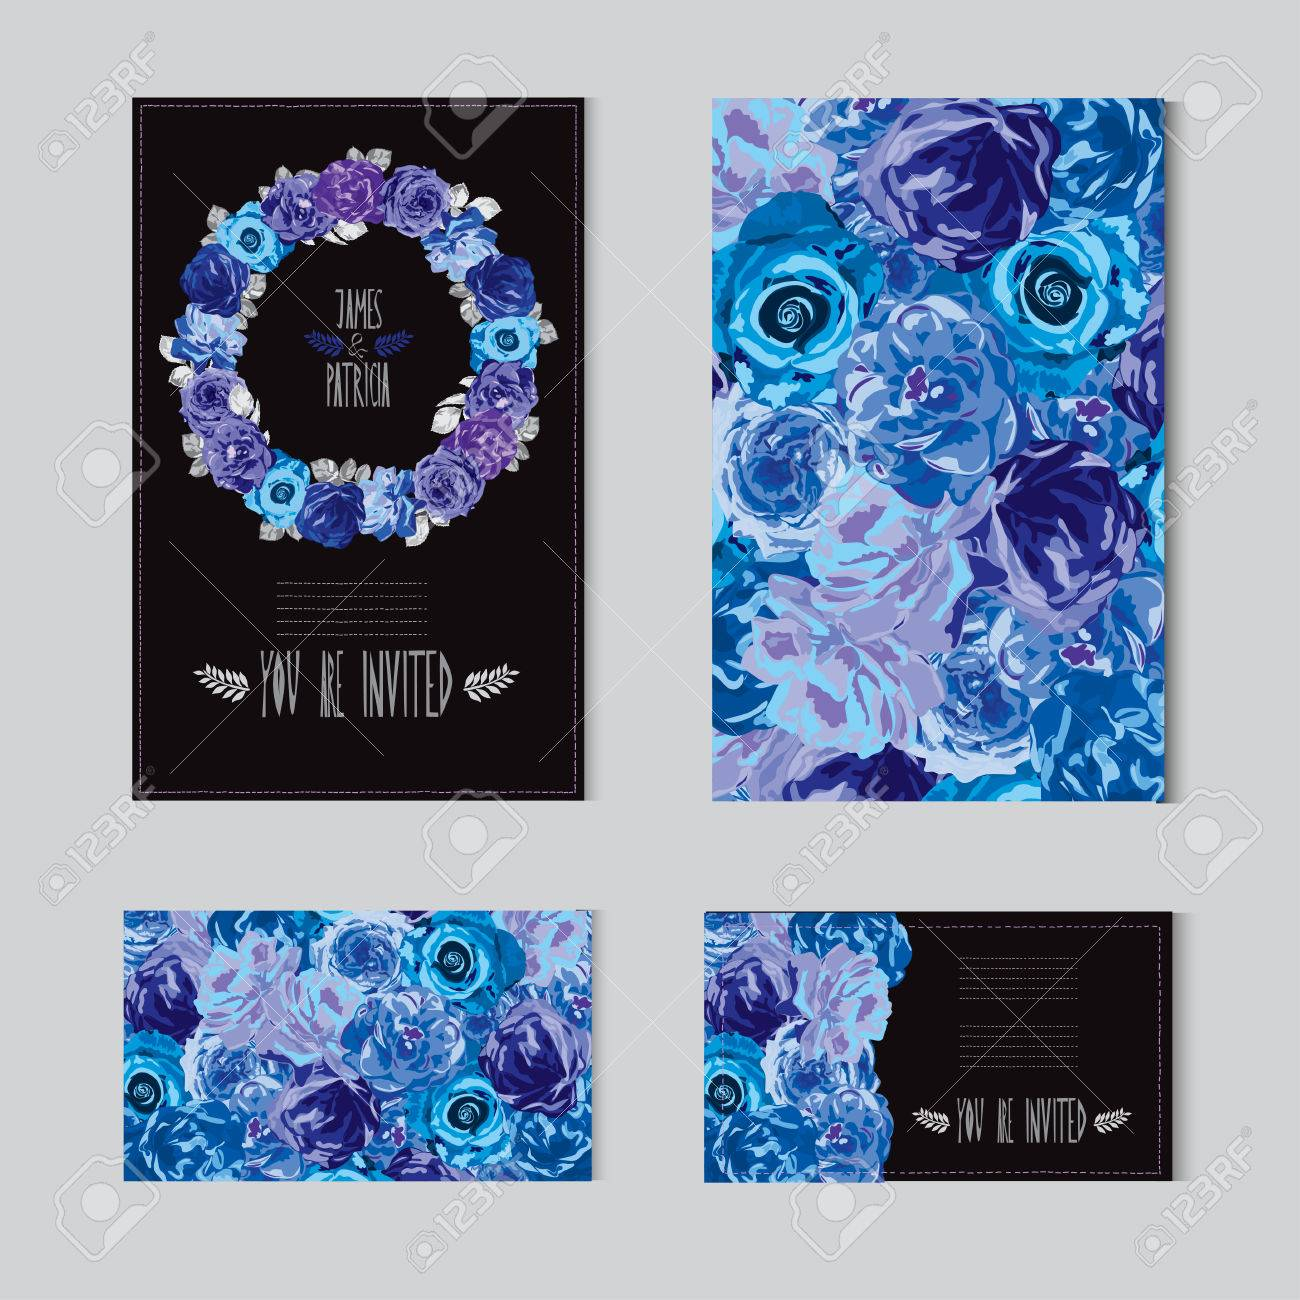 Elegant Cards With Decorative Rose Flowers. Can Be Used For Wedding ...